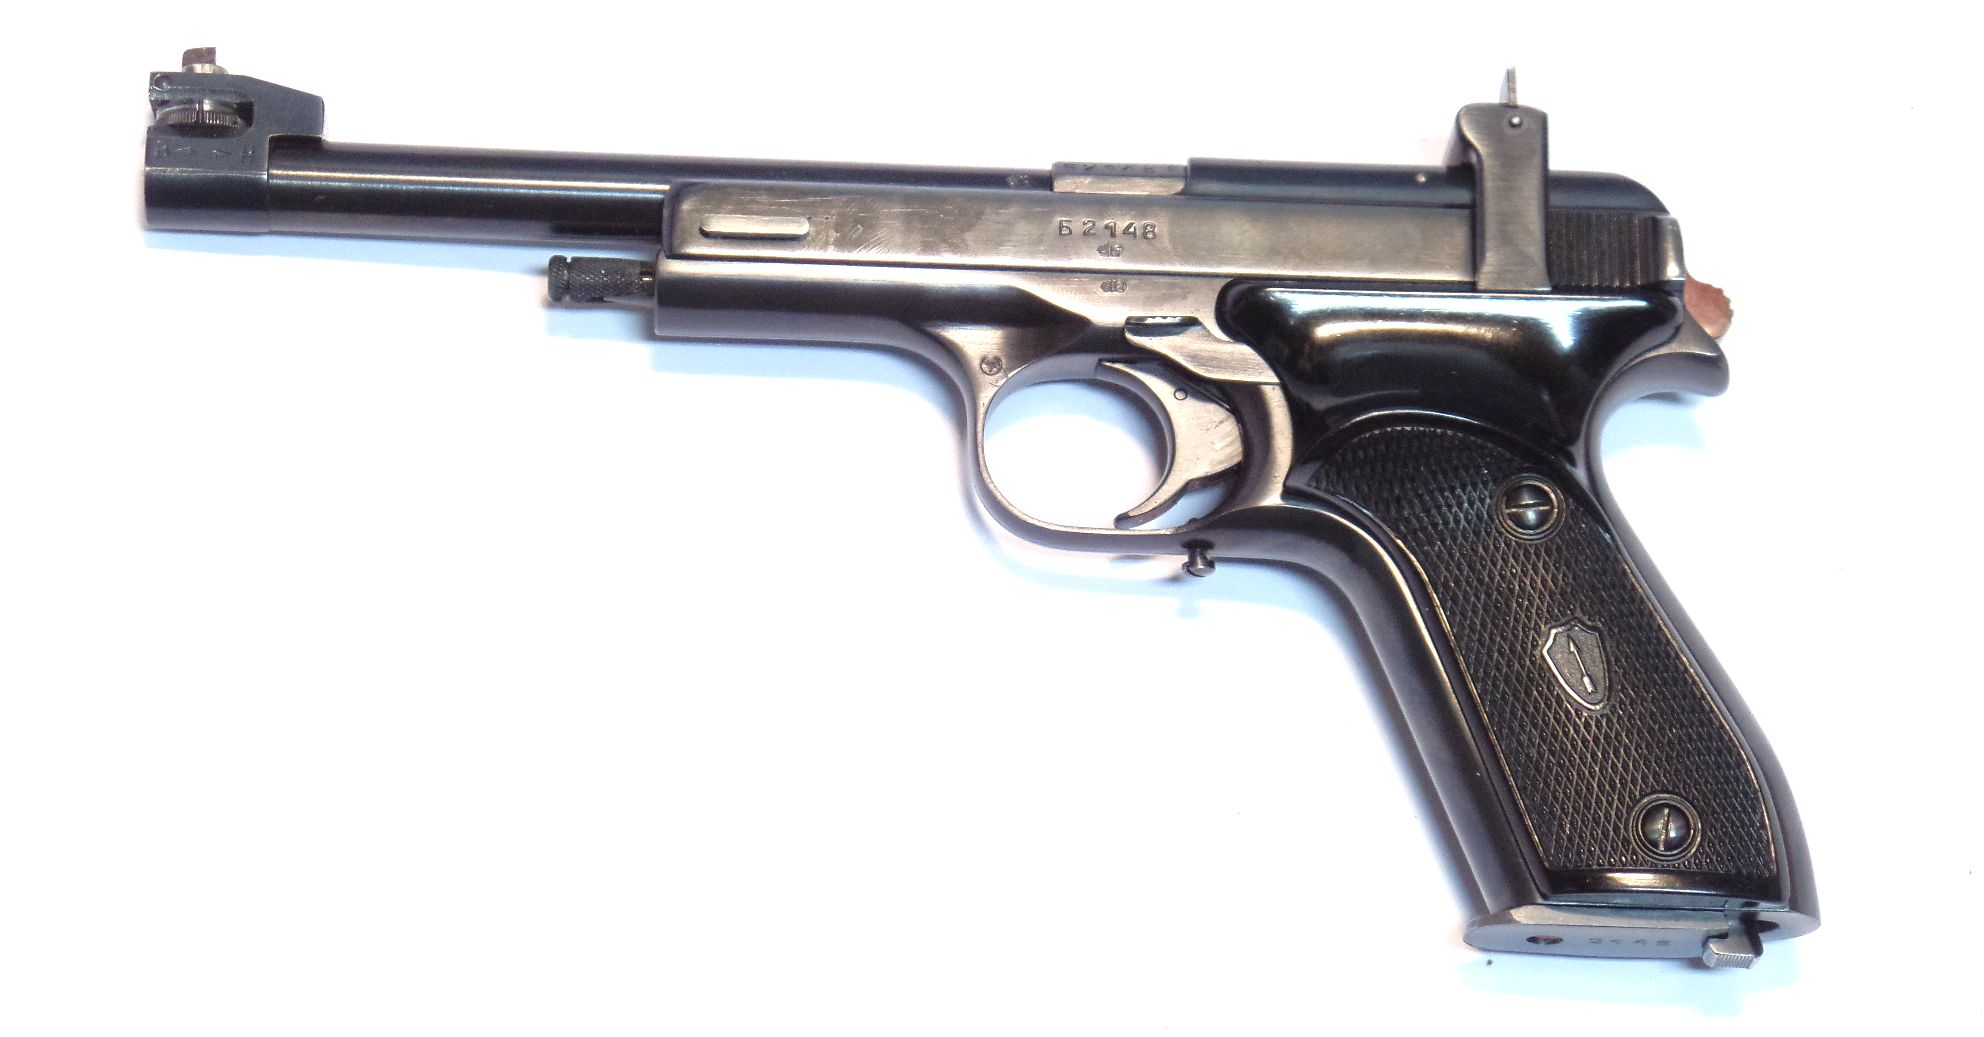 BAIKAL MARGOLIN calibre 22LR